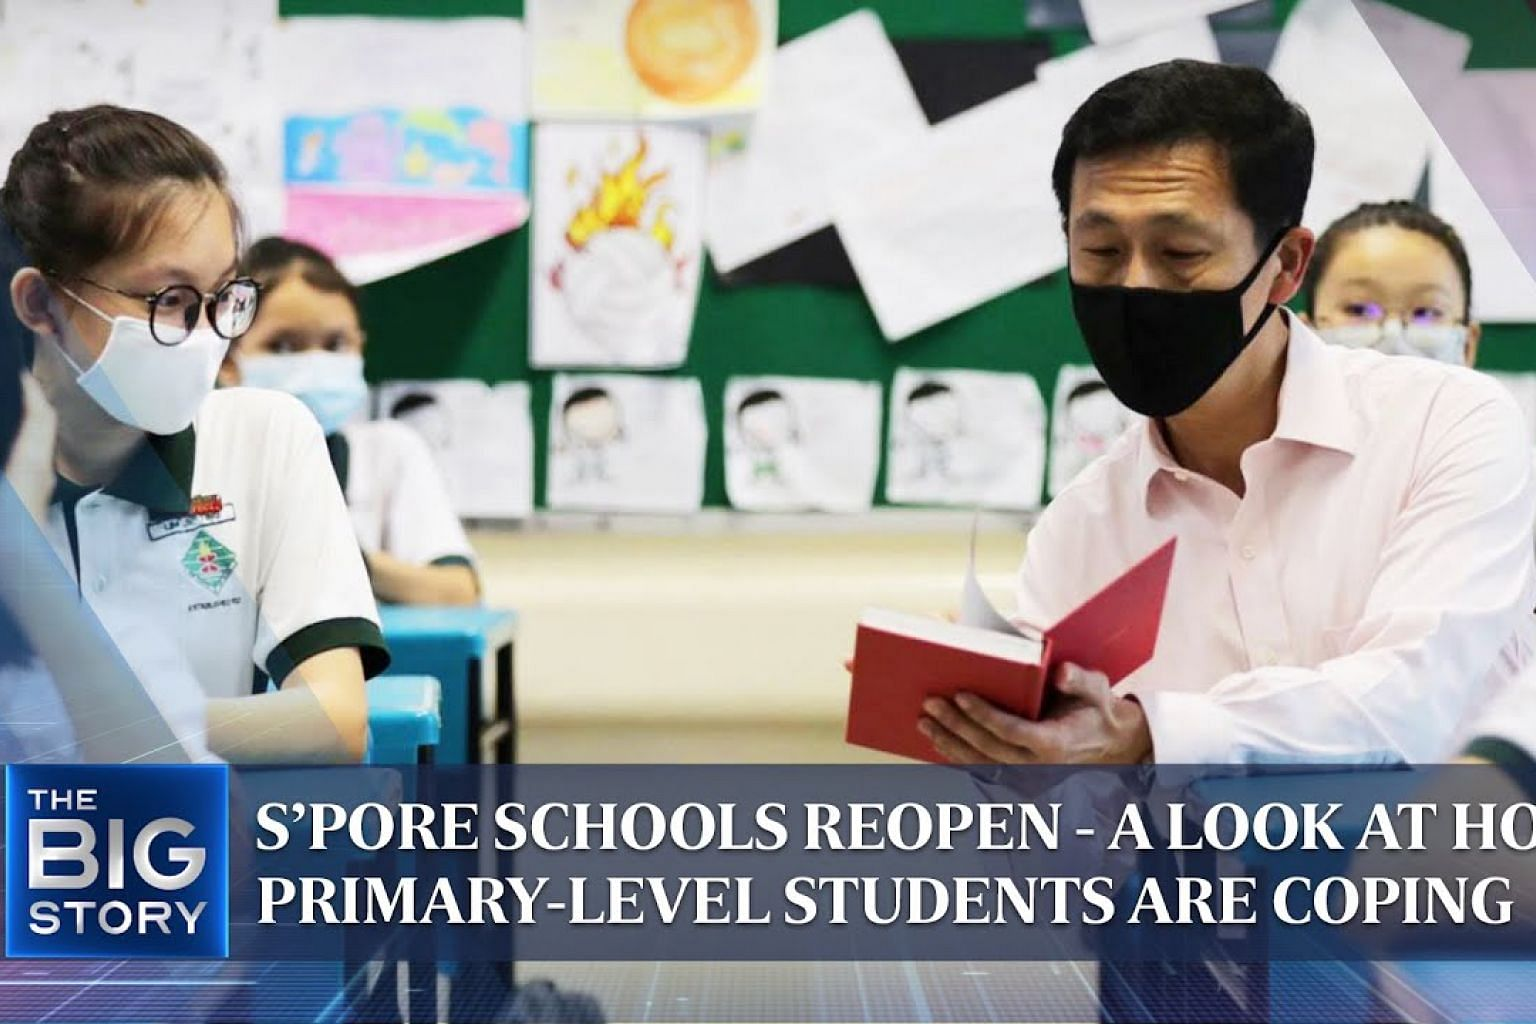 S'pore schools reopen - a look at how primary-level students are coping | THE BIG STORY